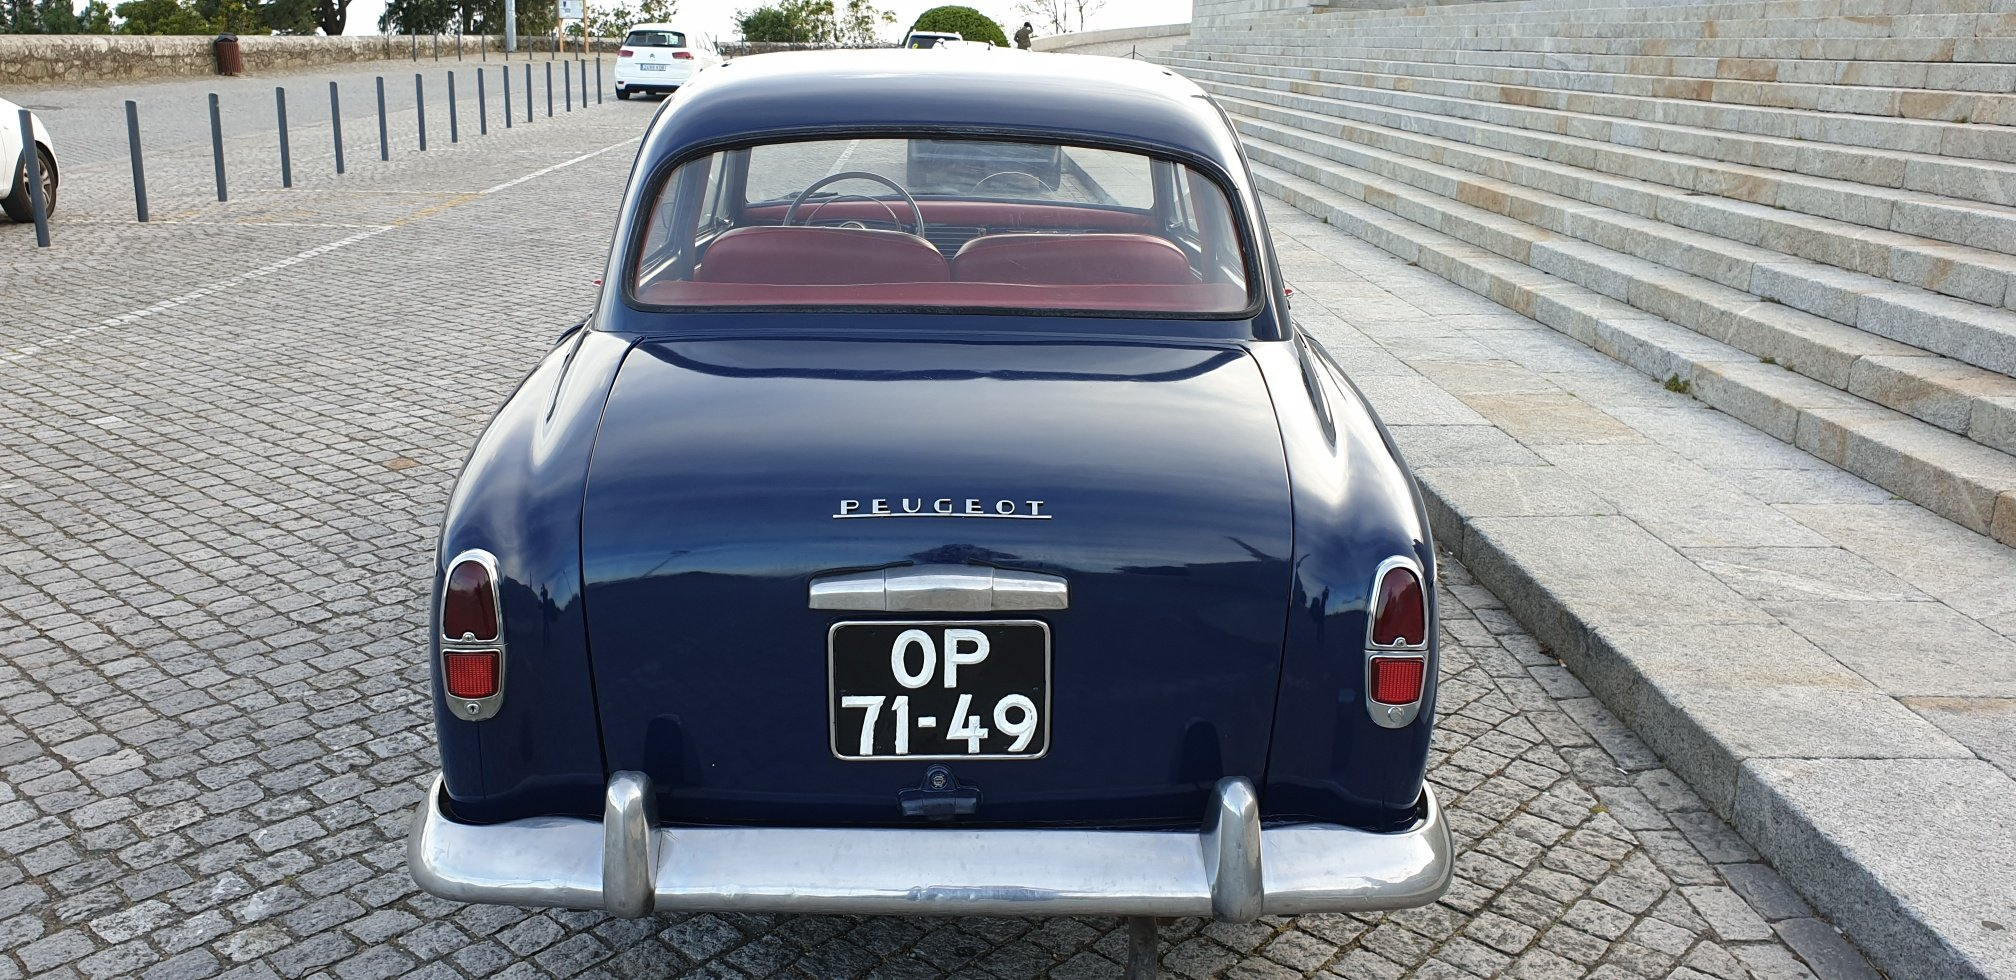 1960 Peugeot 403 Berline Grand Luxe for Sale For Sale (picture 4 of 6)